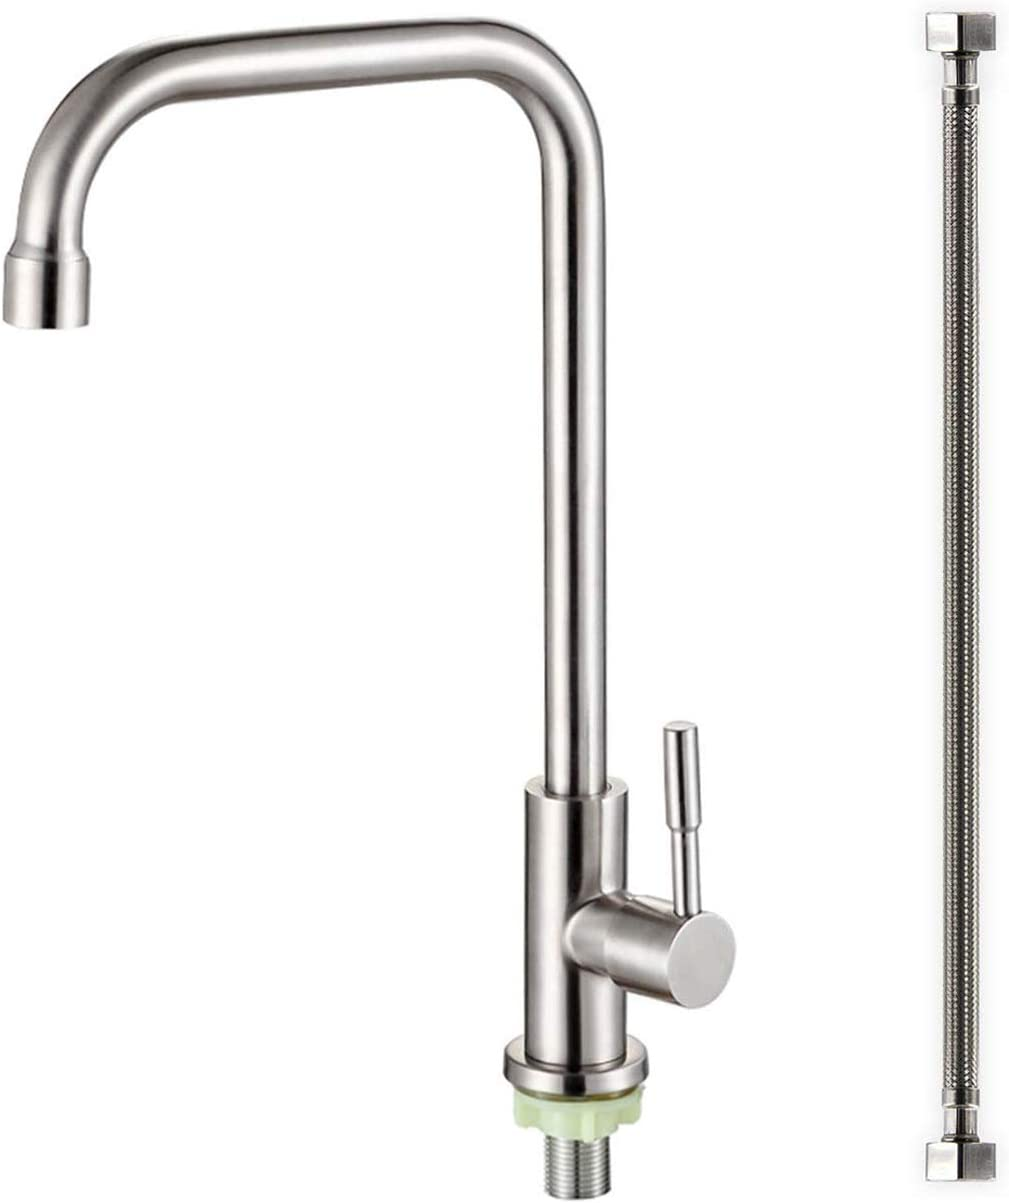 ORLEIMI Cold Only Water Kitchen Faucet Commercial Bar Tap Single Lever Handle 304 Stainless Steel Brushed Nickel Decked Mounted Single Hole Modern